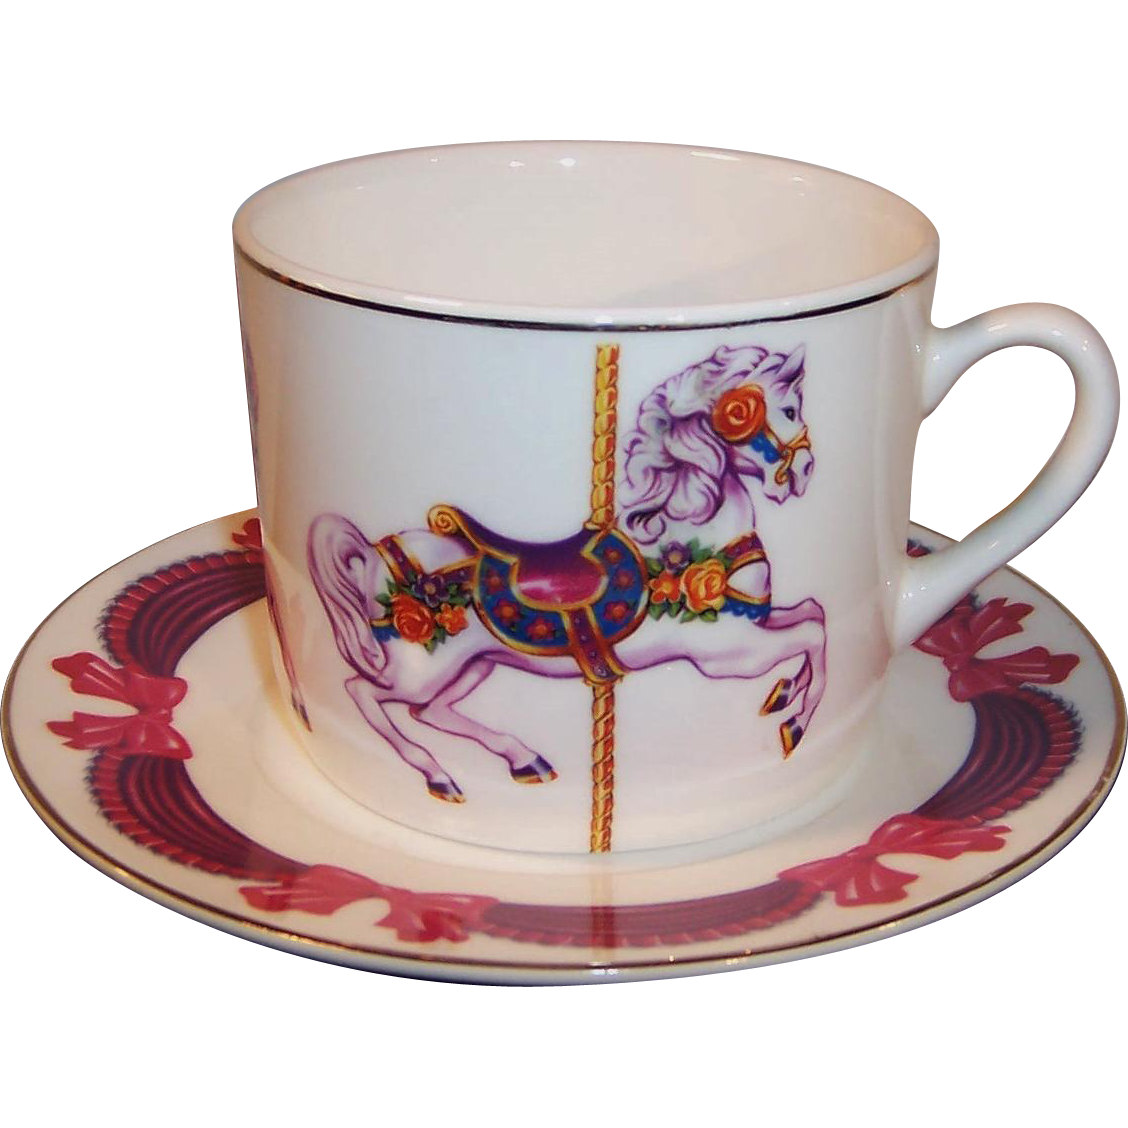 Large Vintage Carousel Merry Go Round Cup & Saucer